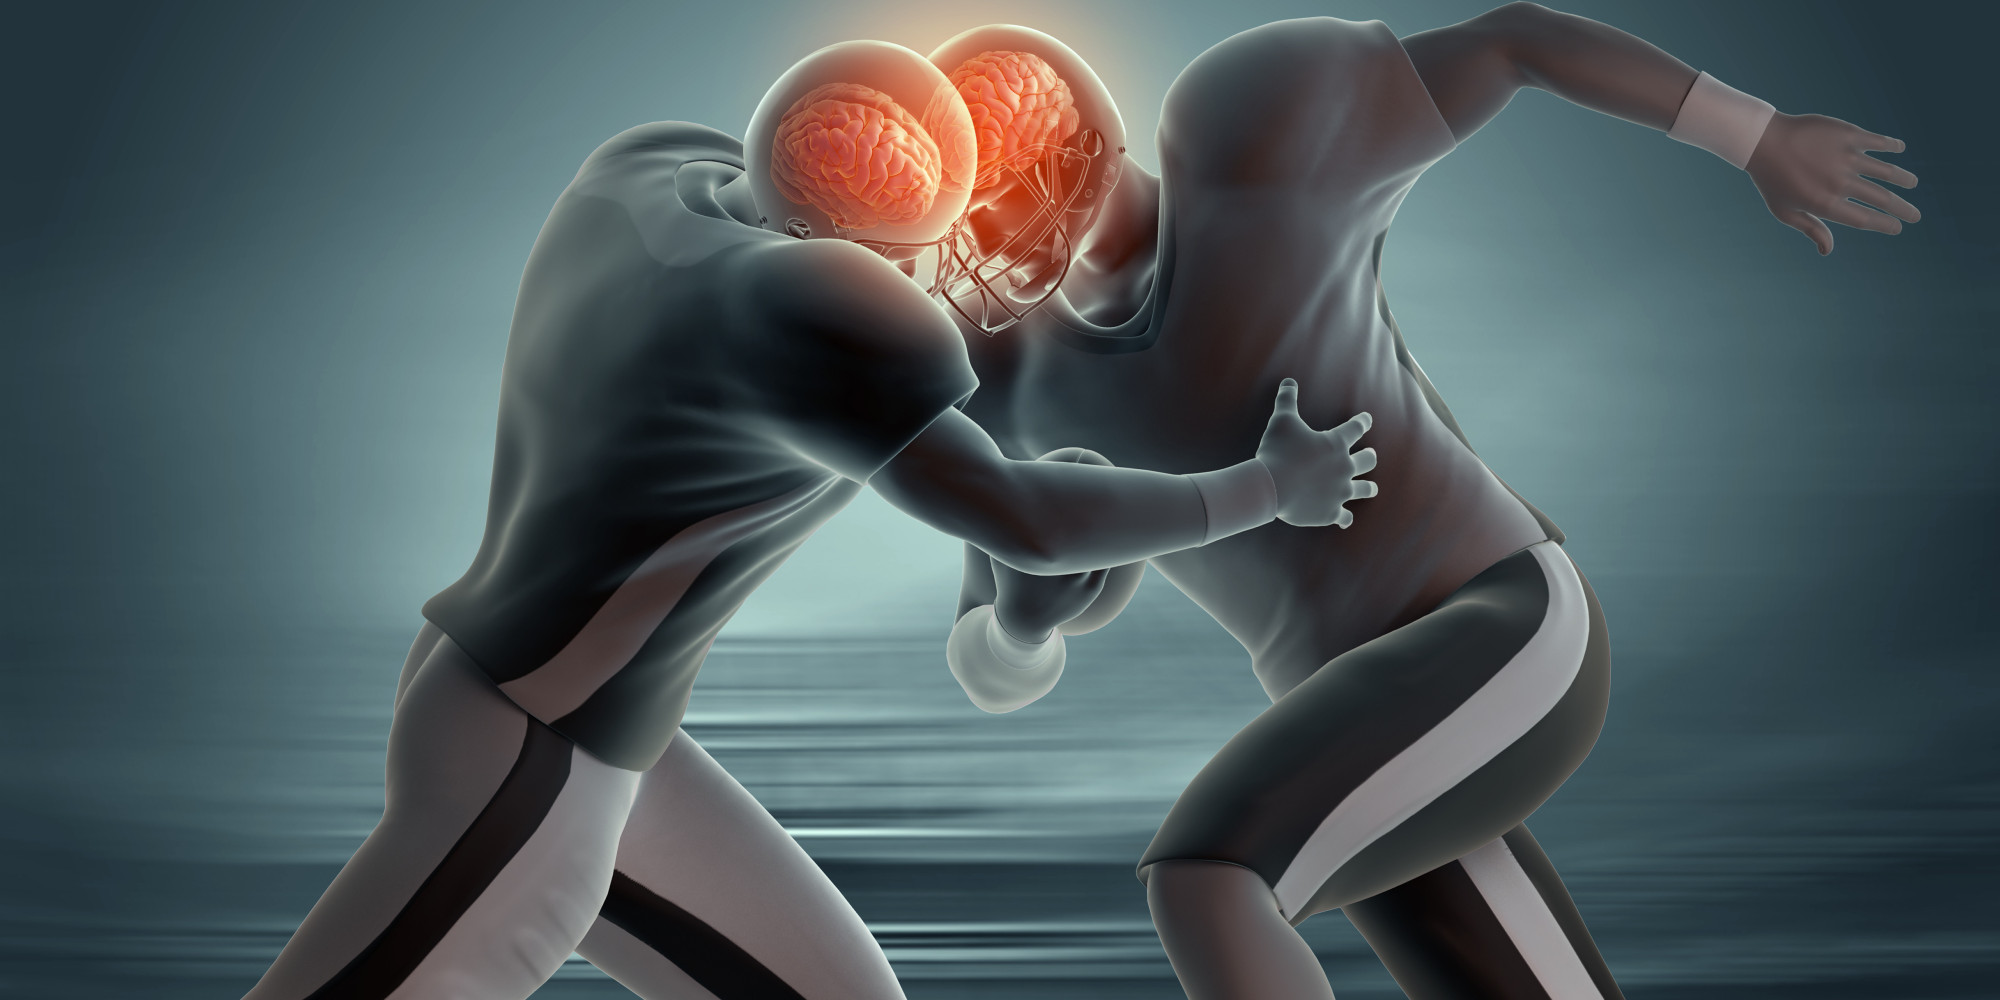 concussions and football Concussions cause the brain to dangerously move back and forth inside the skull american football is one of the most popular sports among male high school athletes, with more than 11 million players, according to the statement.